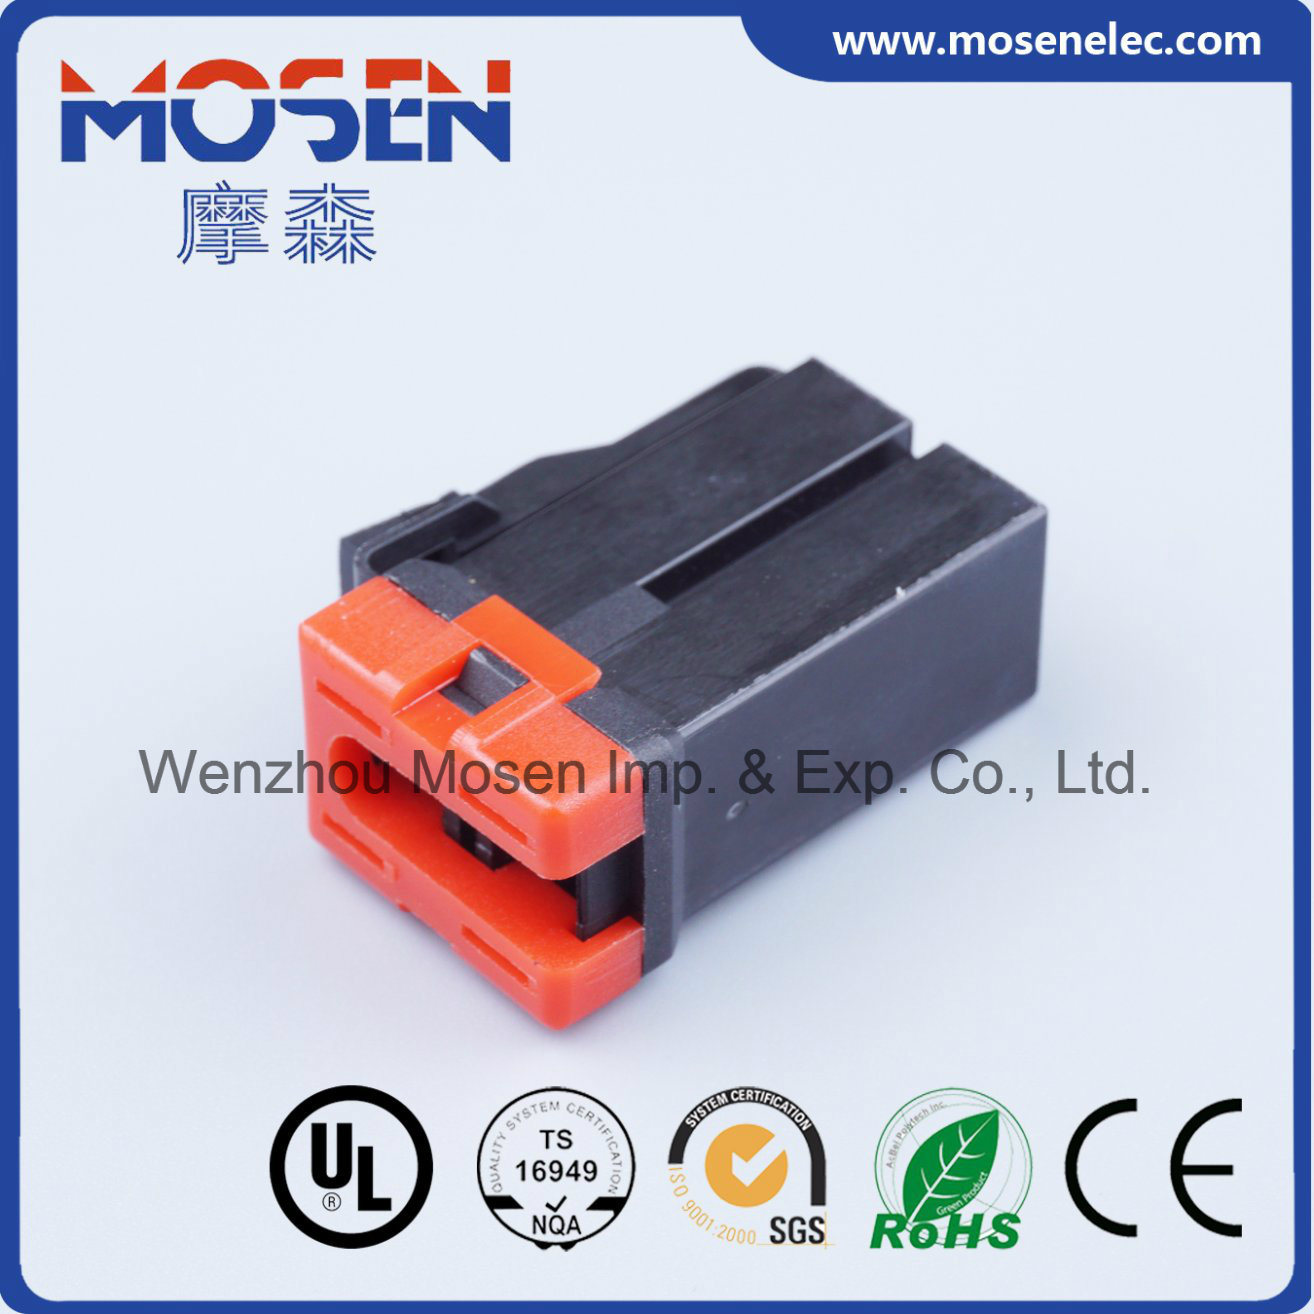 hight resolution of yazaki 2 pins female electrical auto wiring harness cable plastic connector 7123 4123 30 7021 9 6 21